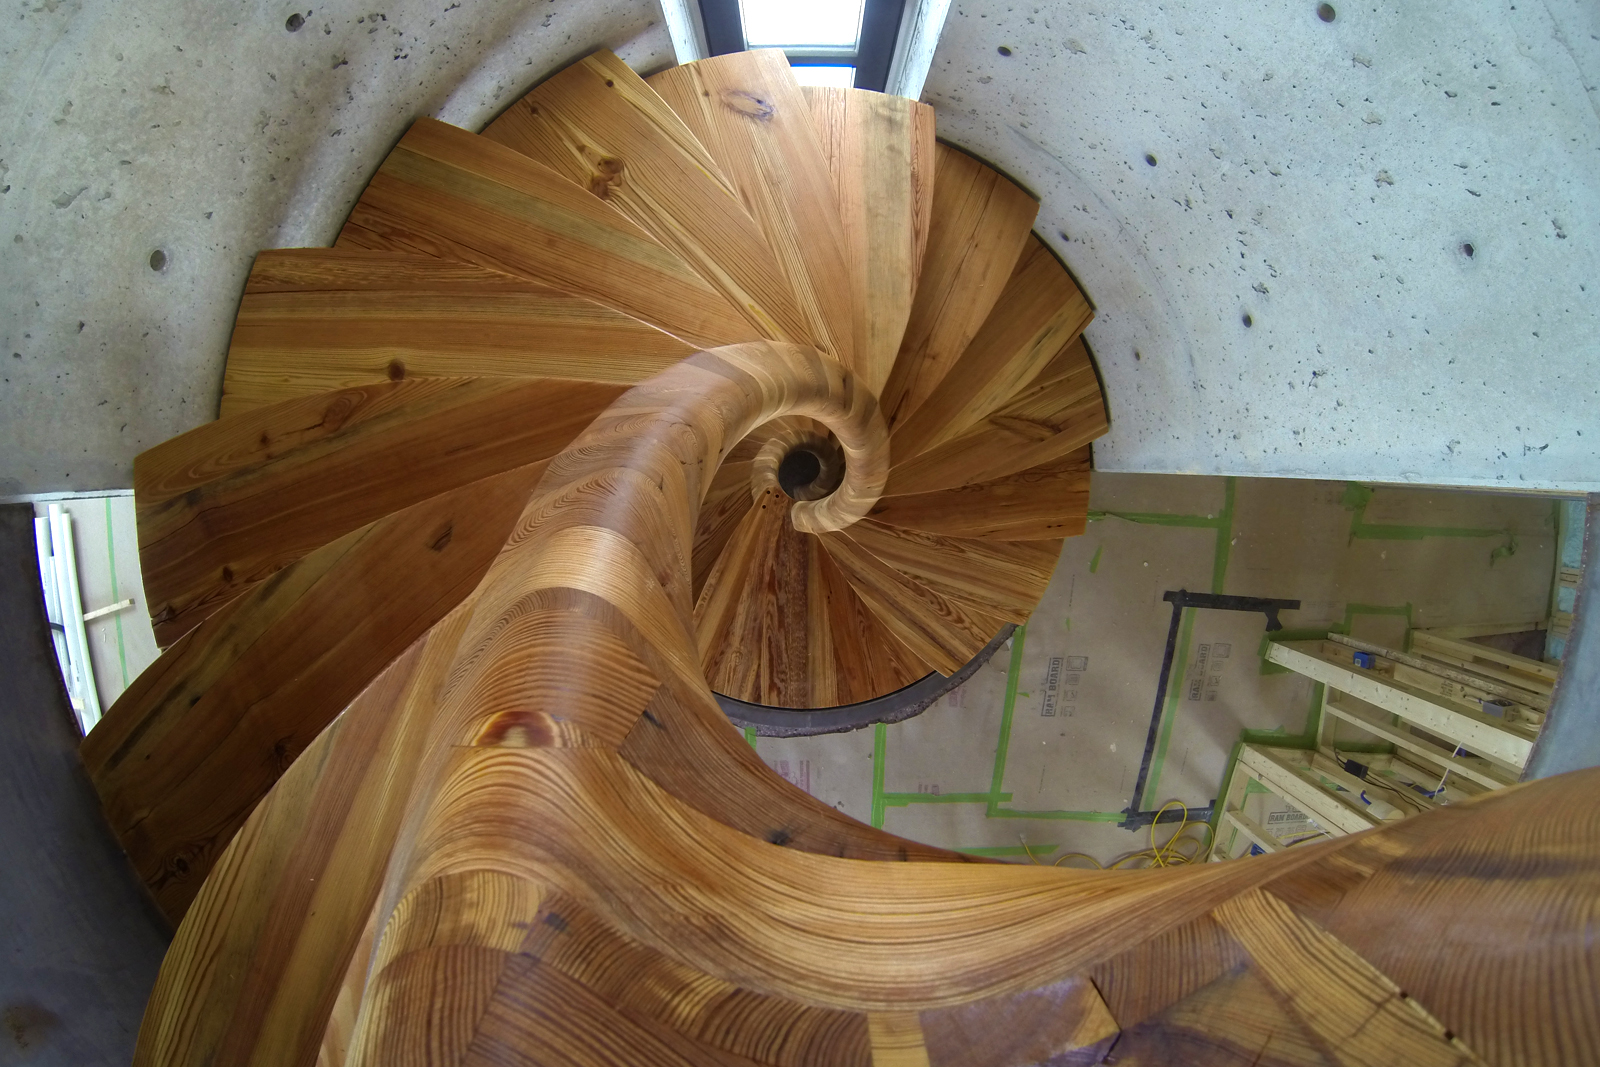 Picture of Spiral Staircase With a TON of Curves